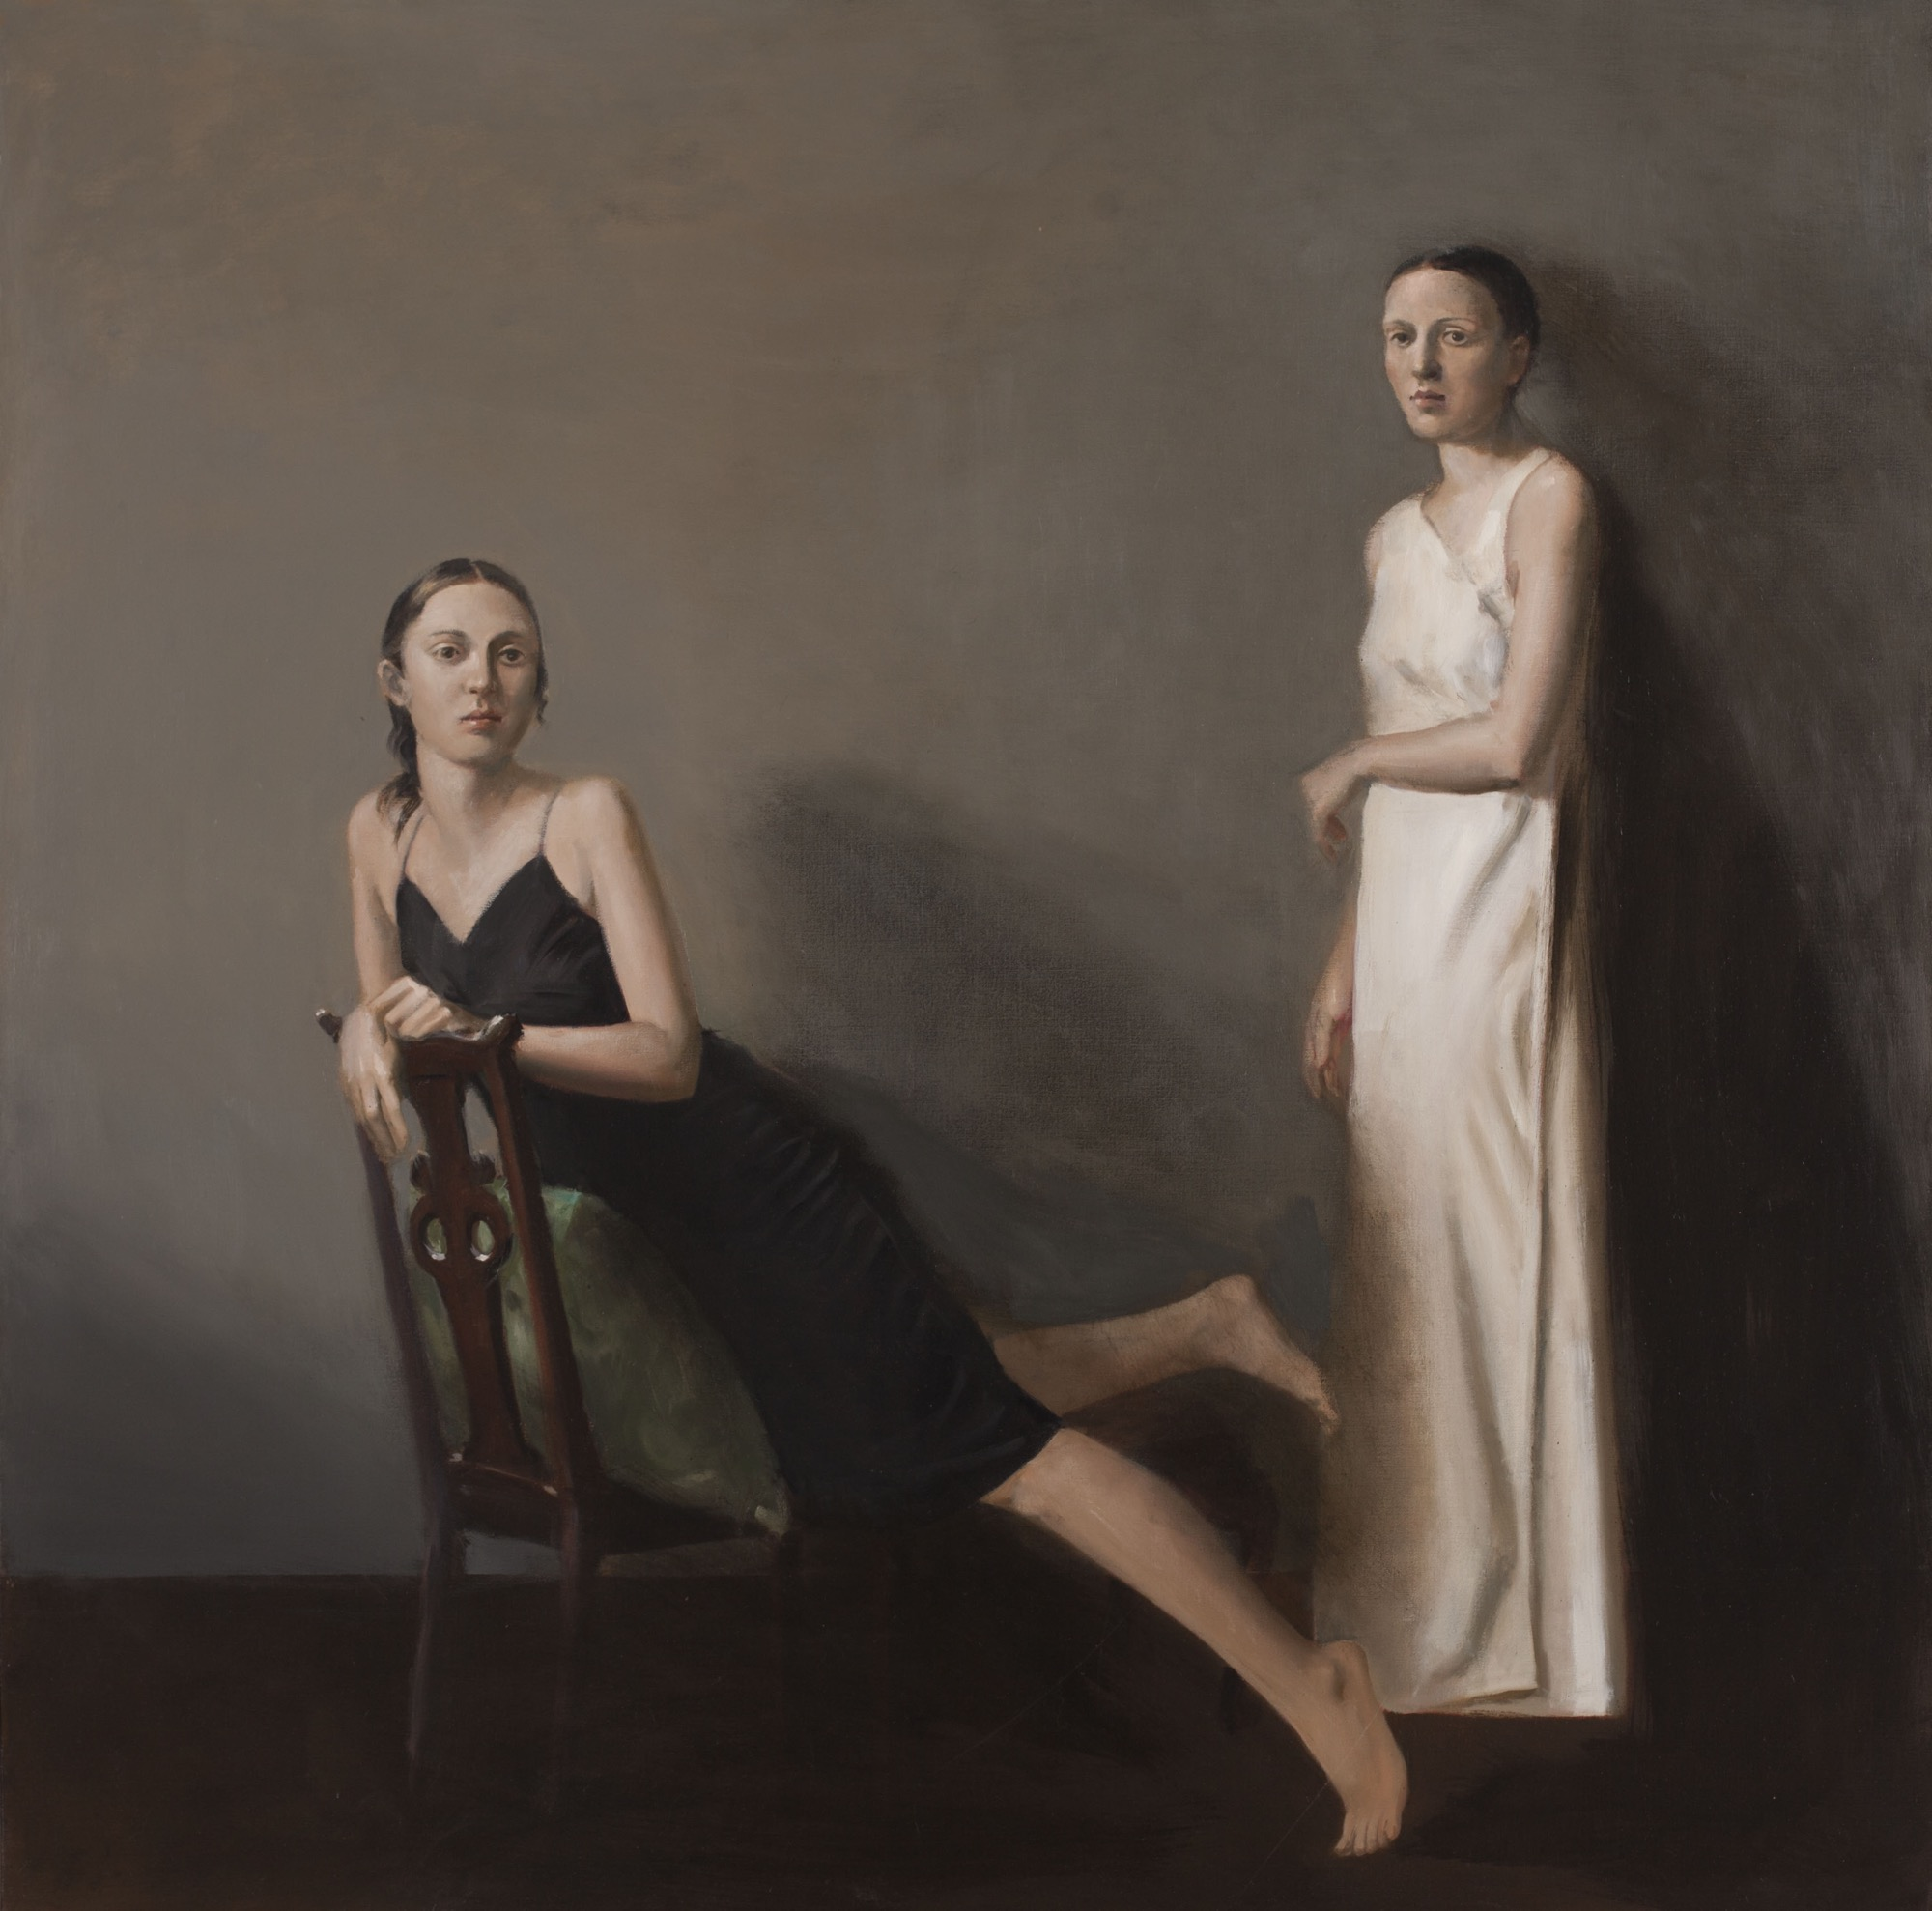 Raymond Han    Two Sisters , 2002  Oil on linen  54 x 54 inches  137.2 x 137.2 cm